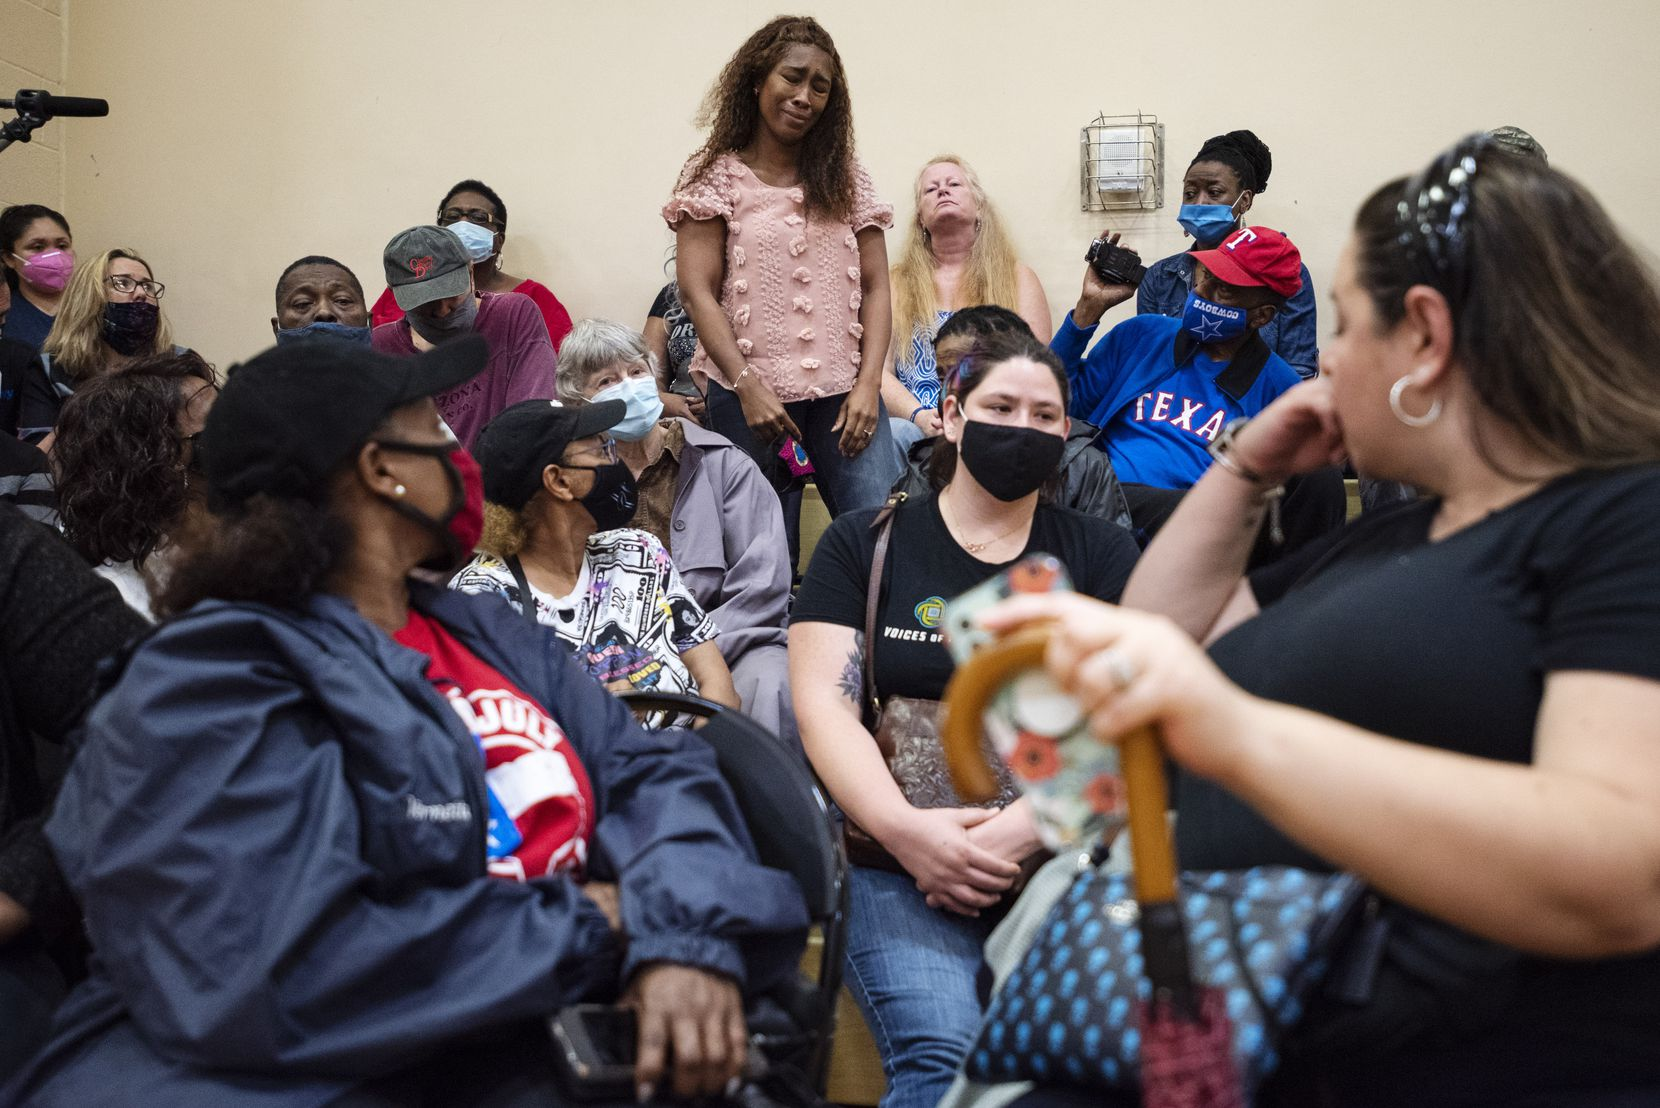 Antwainese Square, 39, (center) said she was the woman who found the body of 4-year-old Cash Gernon and made the 911 call, as she spoke during a community meeting with residents at the Park in the Woods Recreation Center in Dallas on Monday, May 24, 2021. Community members organized the meeting via the NextDoor app and met with city officials, including District 3 City Council member Casey Thomas and Dallas police Chief Eddie Garcia, about the recent death of 4-year-old Cash Gernon.